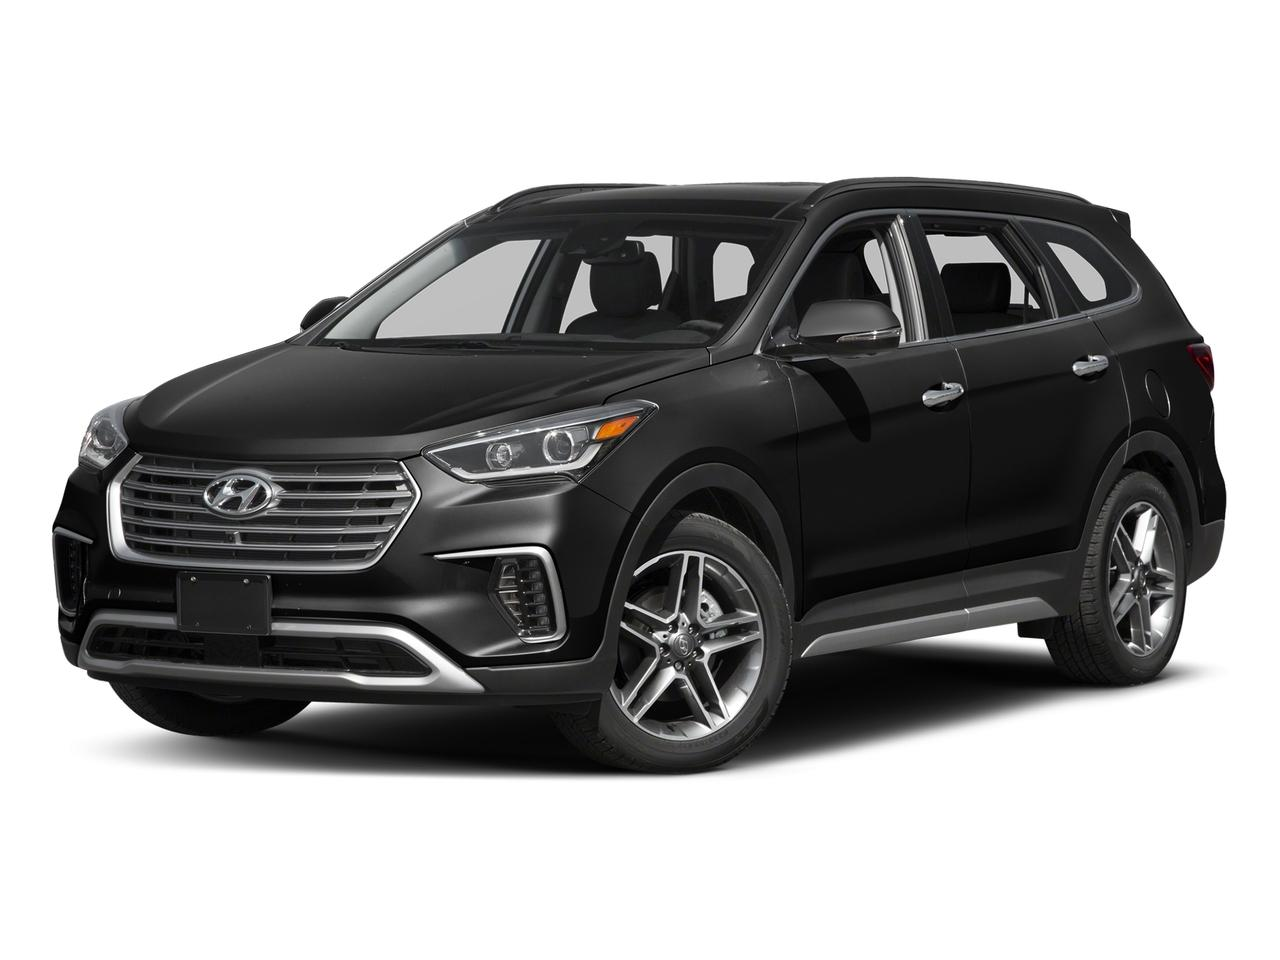 2017 Hyundai Santa Fe Vehicle Photo in Lake Bluff, IL 60044